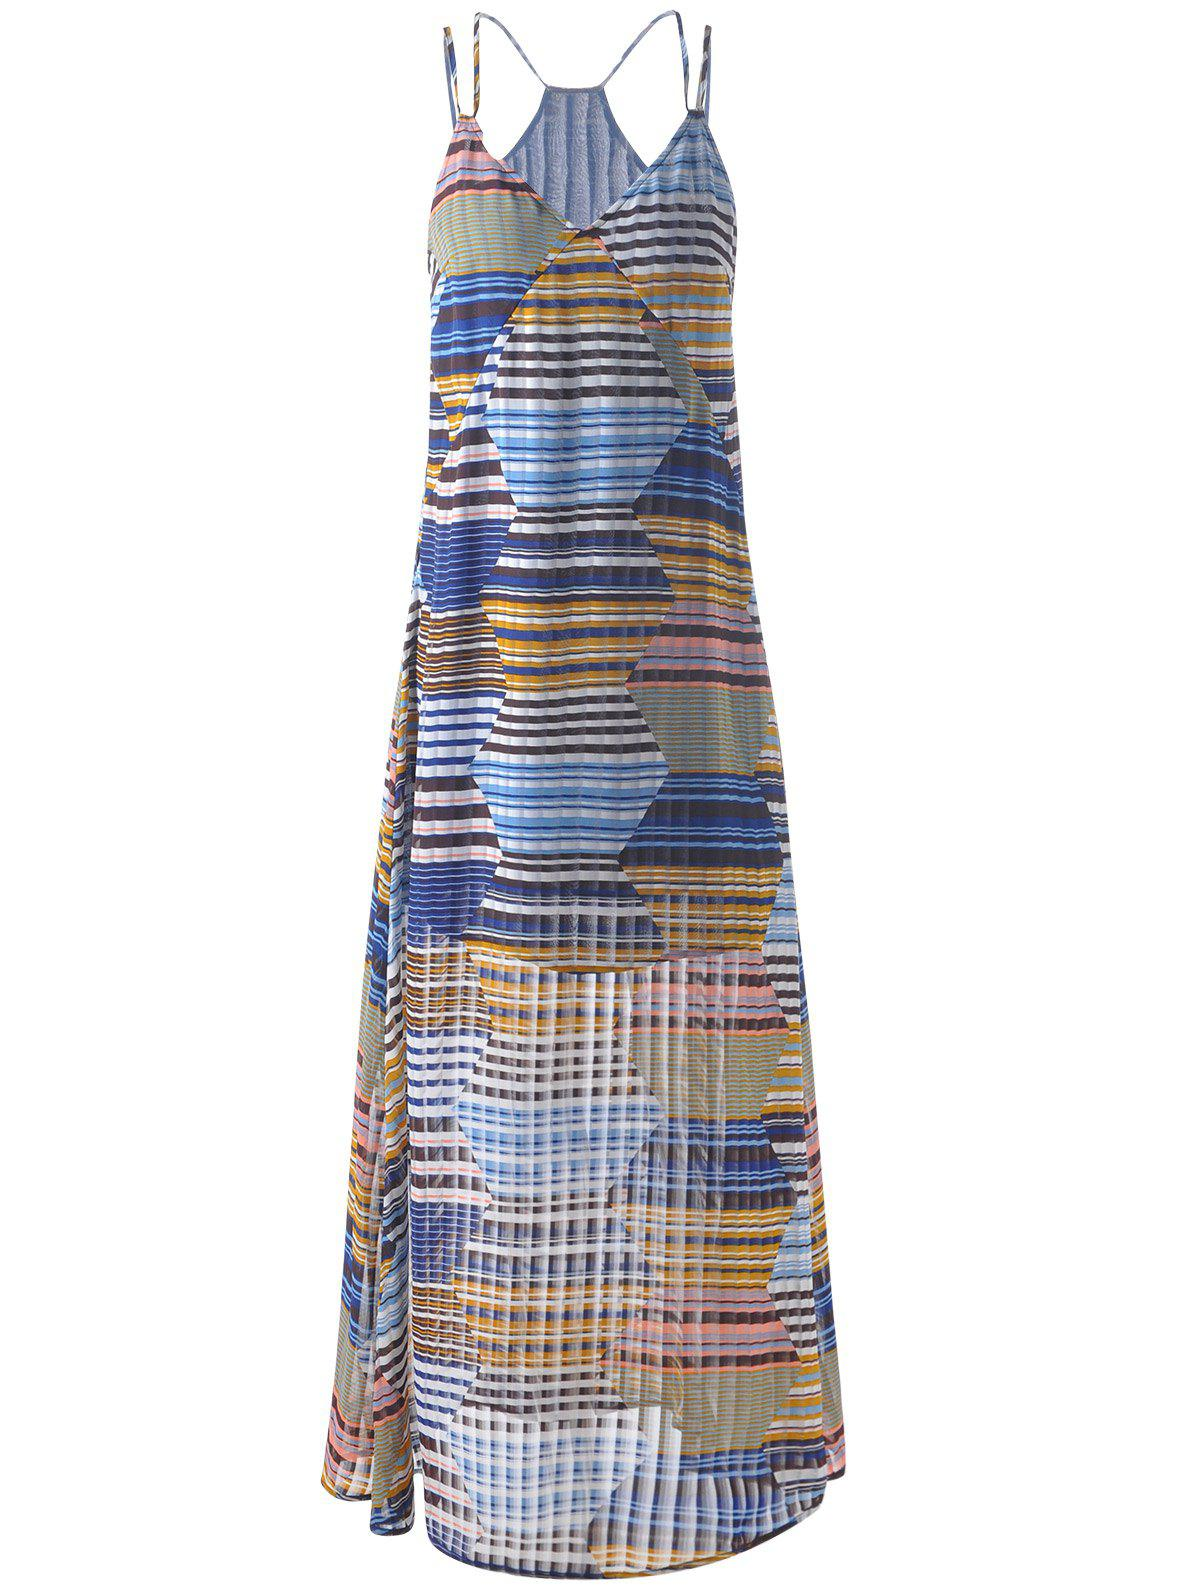 Spaghetti Strap Long Striped Dress For Women - GREY/WHITE/BLUE M